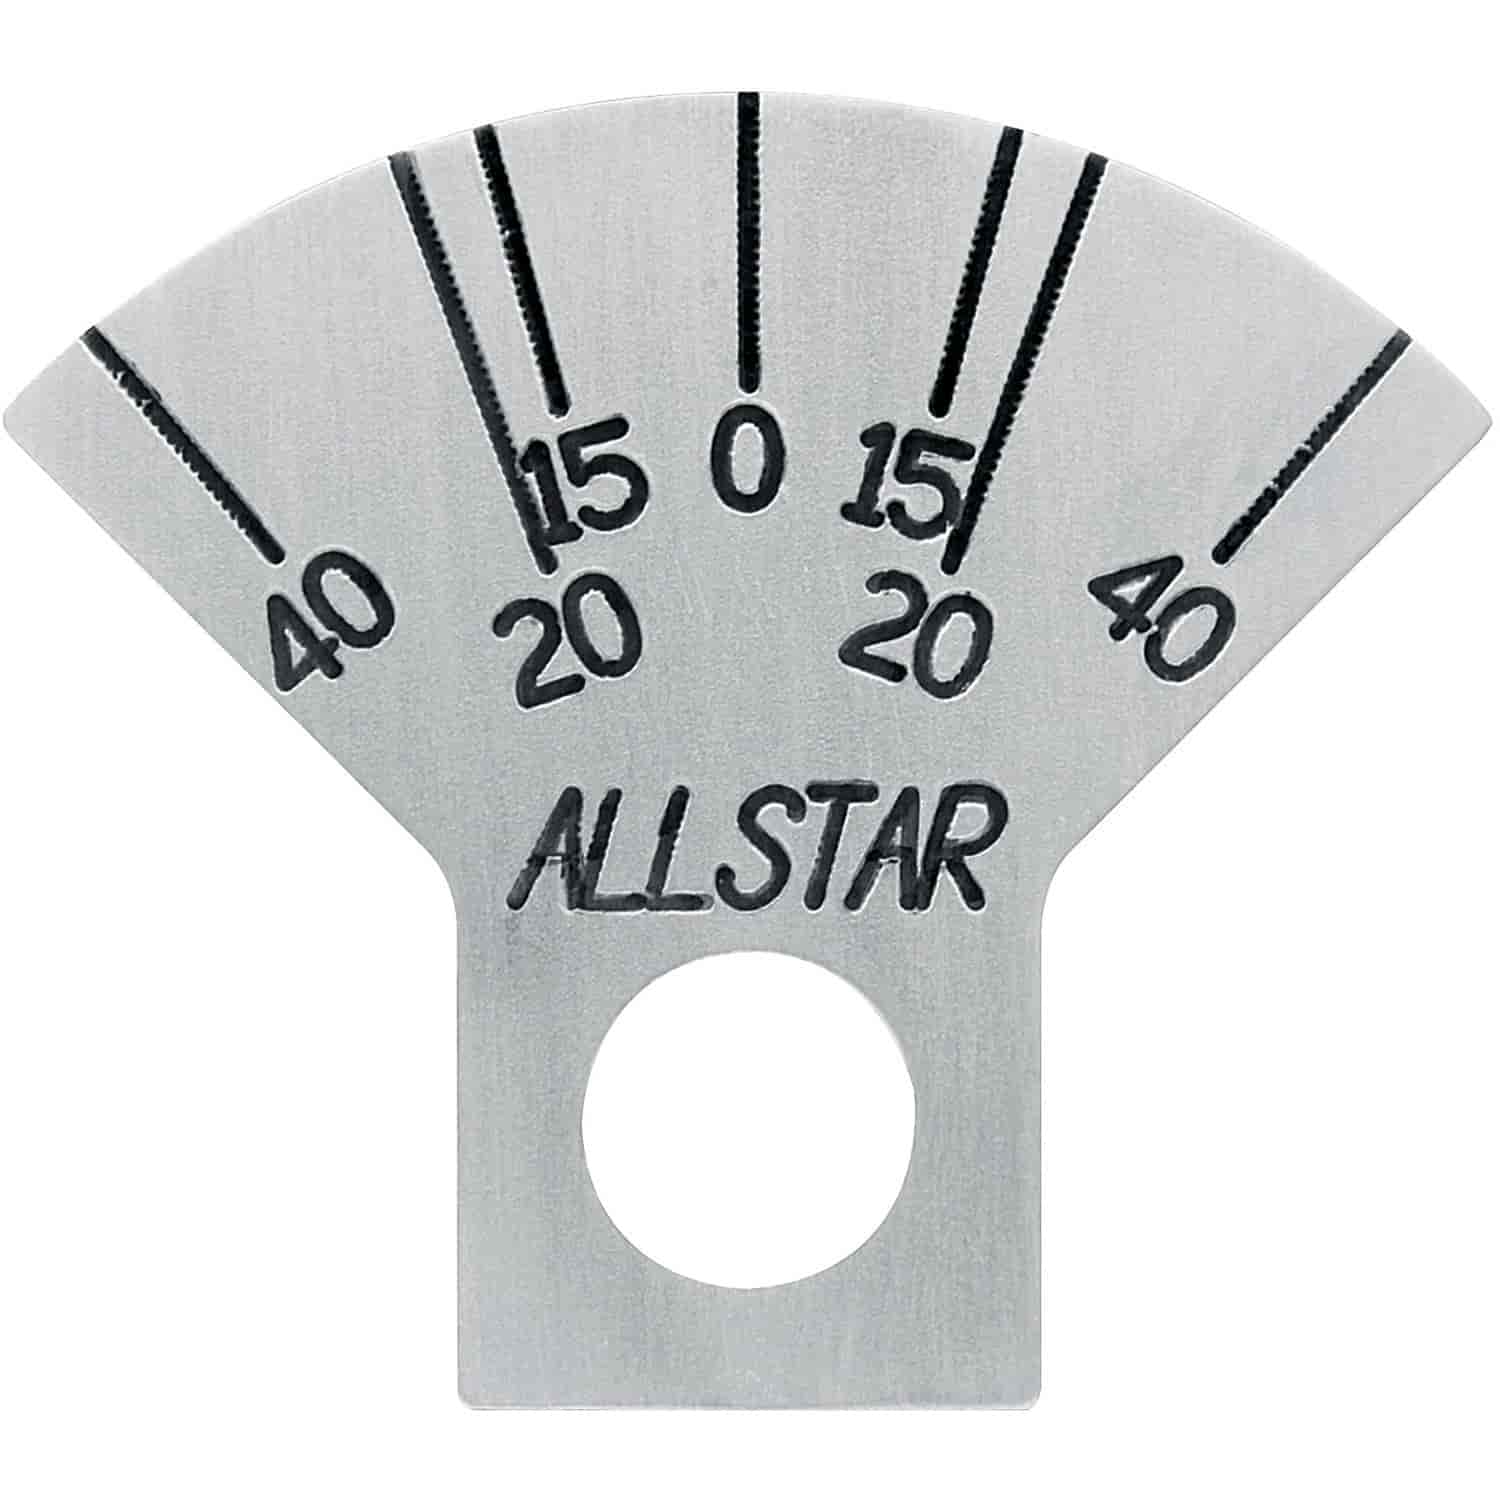 Allstar Performance ALL10752 - Allstar Caster Plate